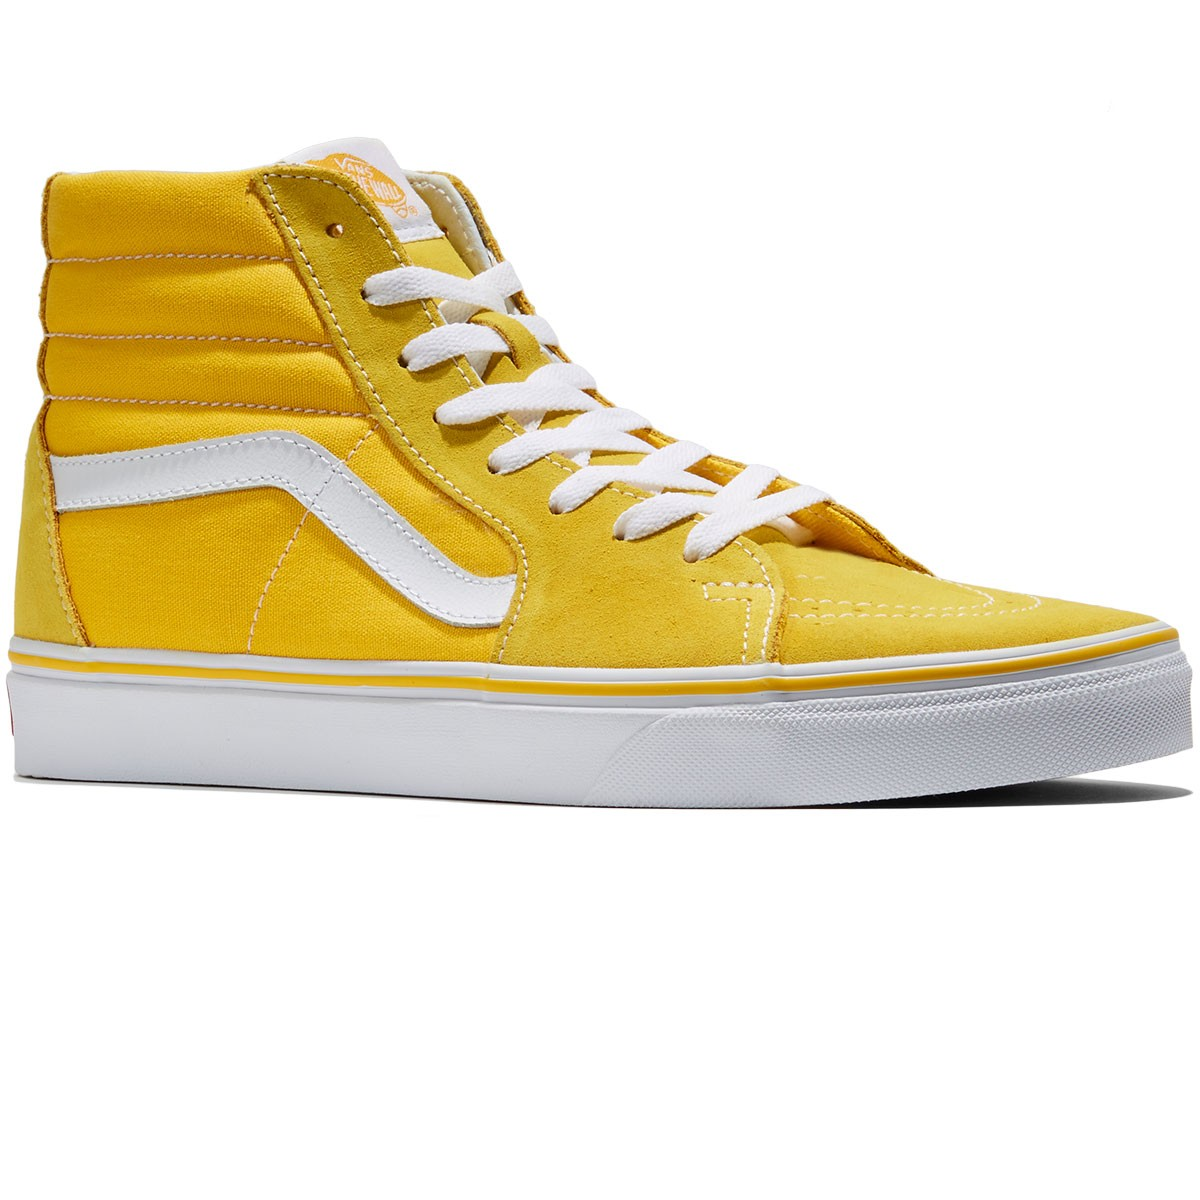 d467c9e0a95666 ... Mens Yellow Vans Sk8-Hi Pro Shoes ...